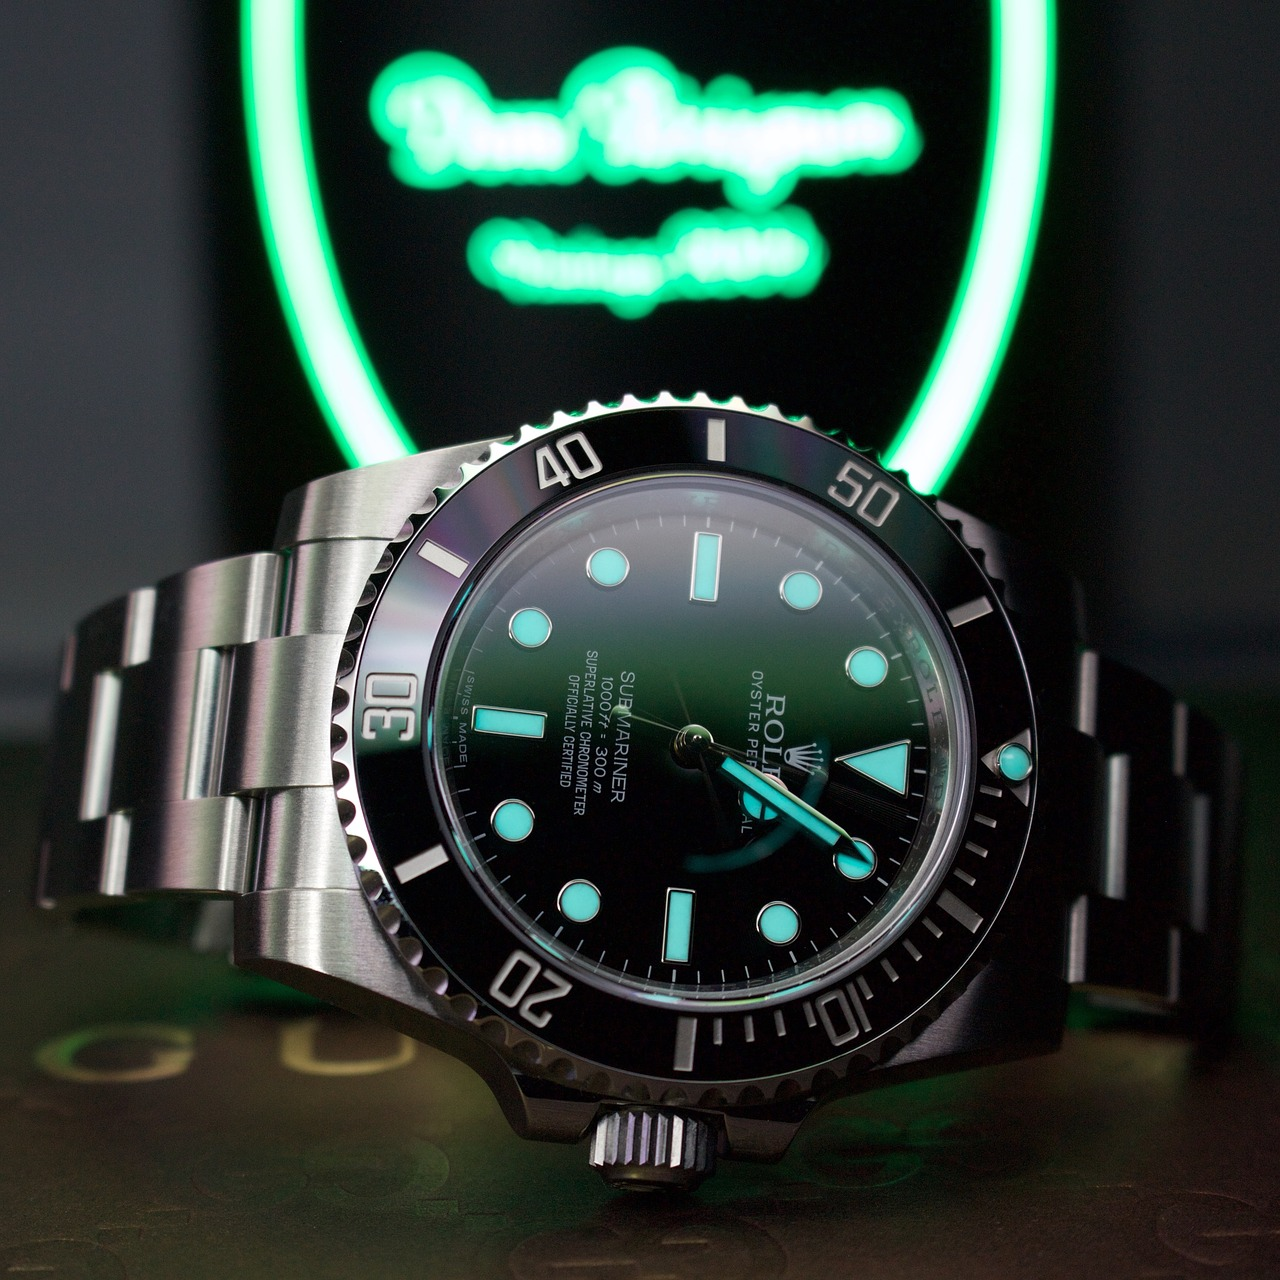 How to travel safely with a Rolex | Travel tips & guides | Safety | Elle Blonde Luxury Lifestyle Destination Blog